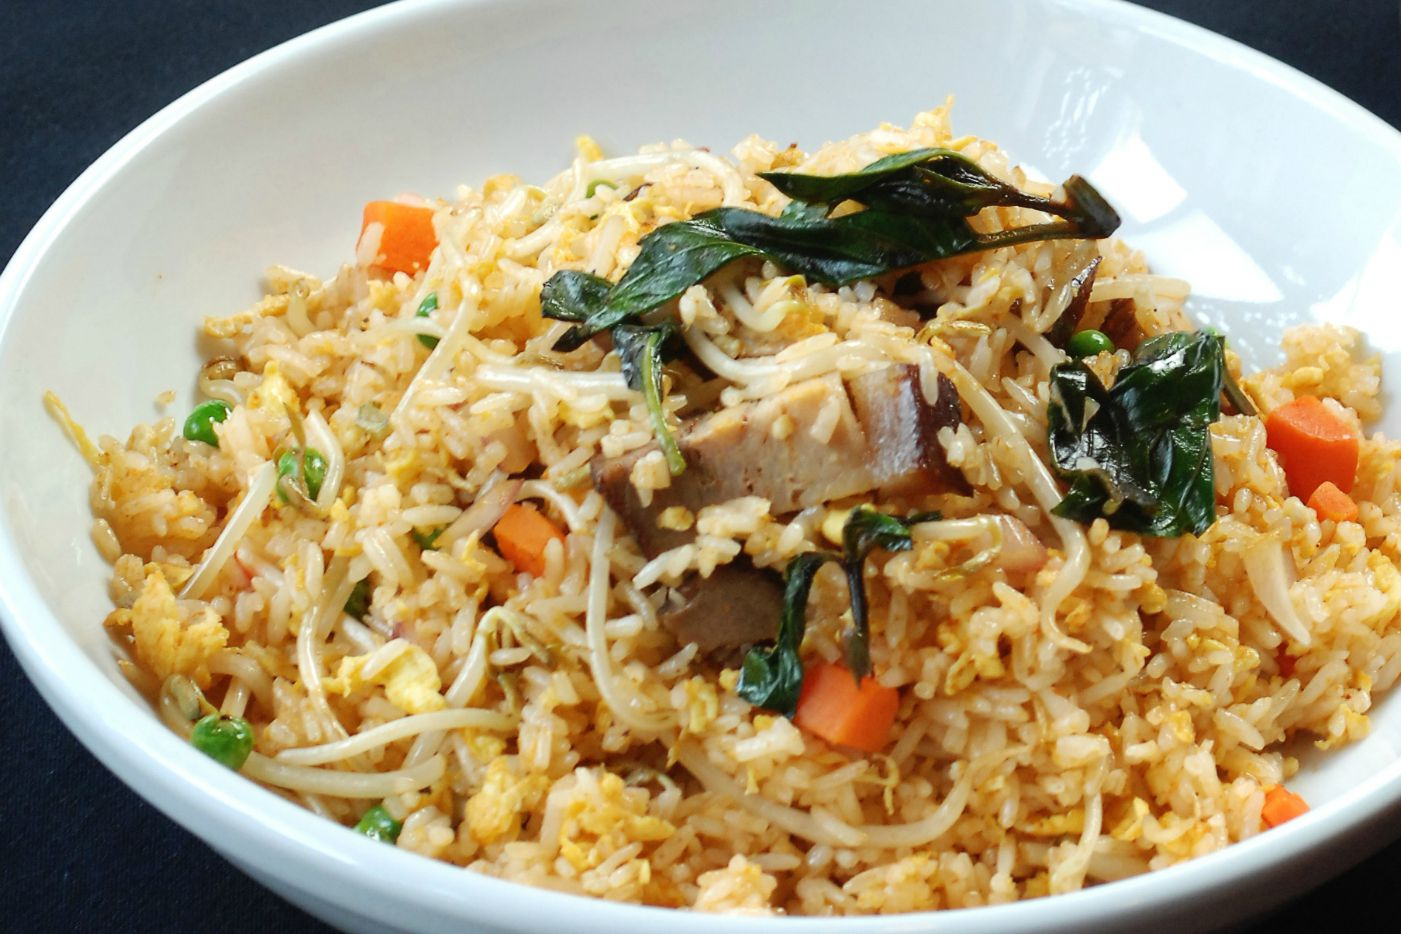 Luscious fried rice can be an object of obsession, yet finding a crazy-good one can be a weirdly challenging pursuit.